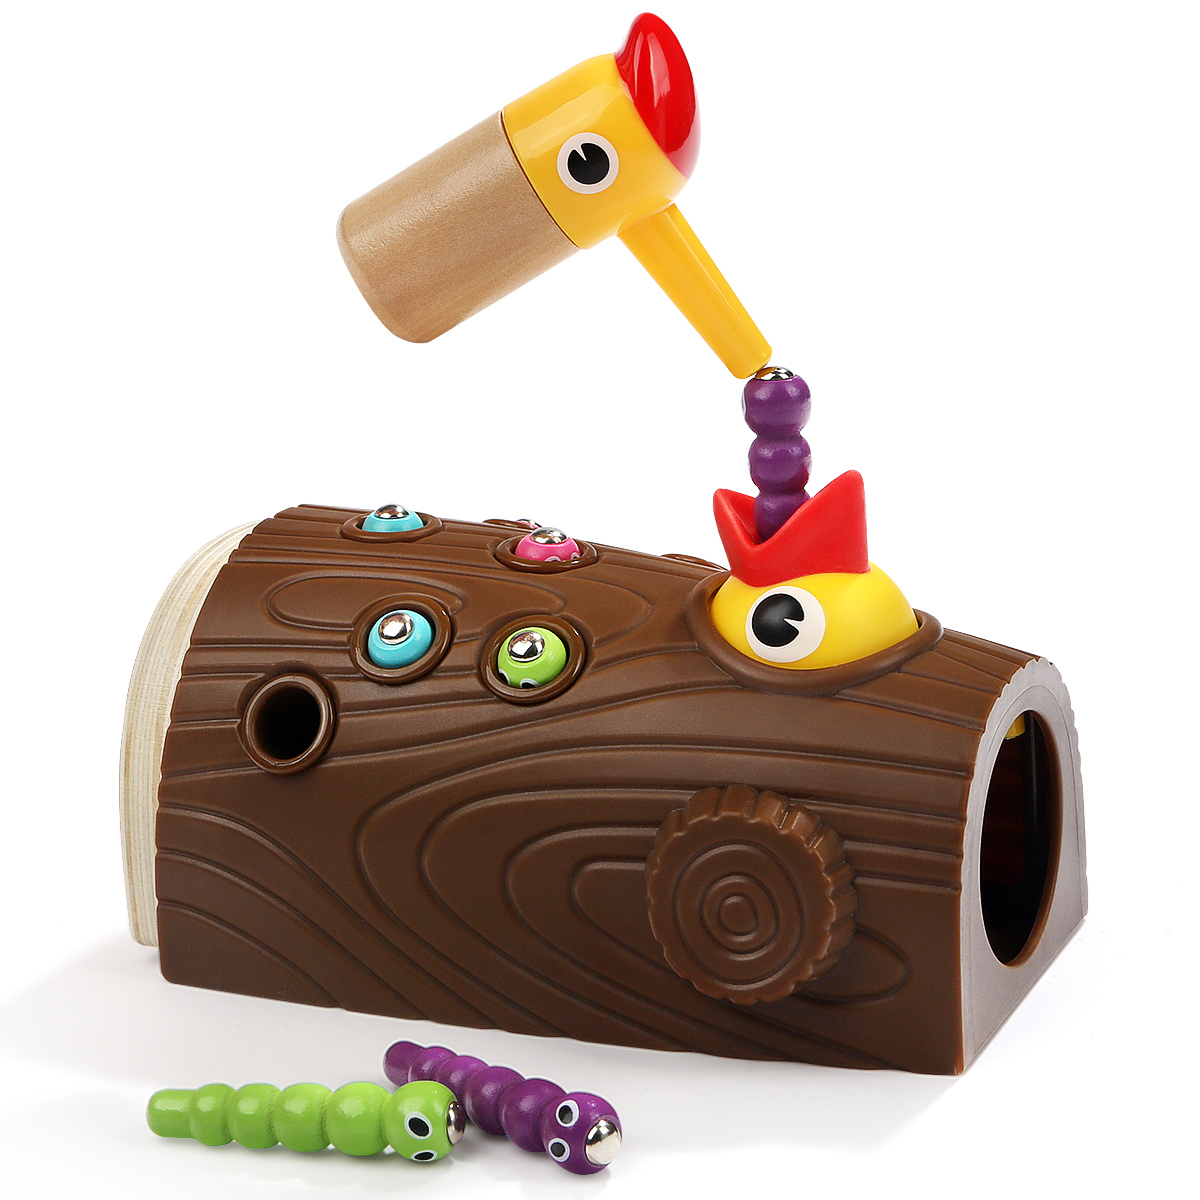 Topbright Educational Wood pecker Eating Caterpillar Game Toy for Kids Manufacturers, Topbright Educational Wood pecker Eating Caterpillar Game Toy for Kids Factory, Topbright Educational Wood pecker Eating Caterpillar Game Toy for Kids